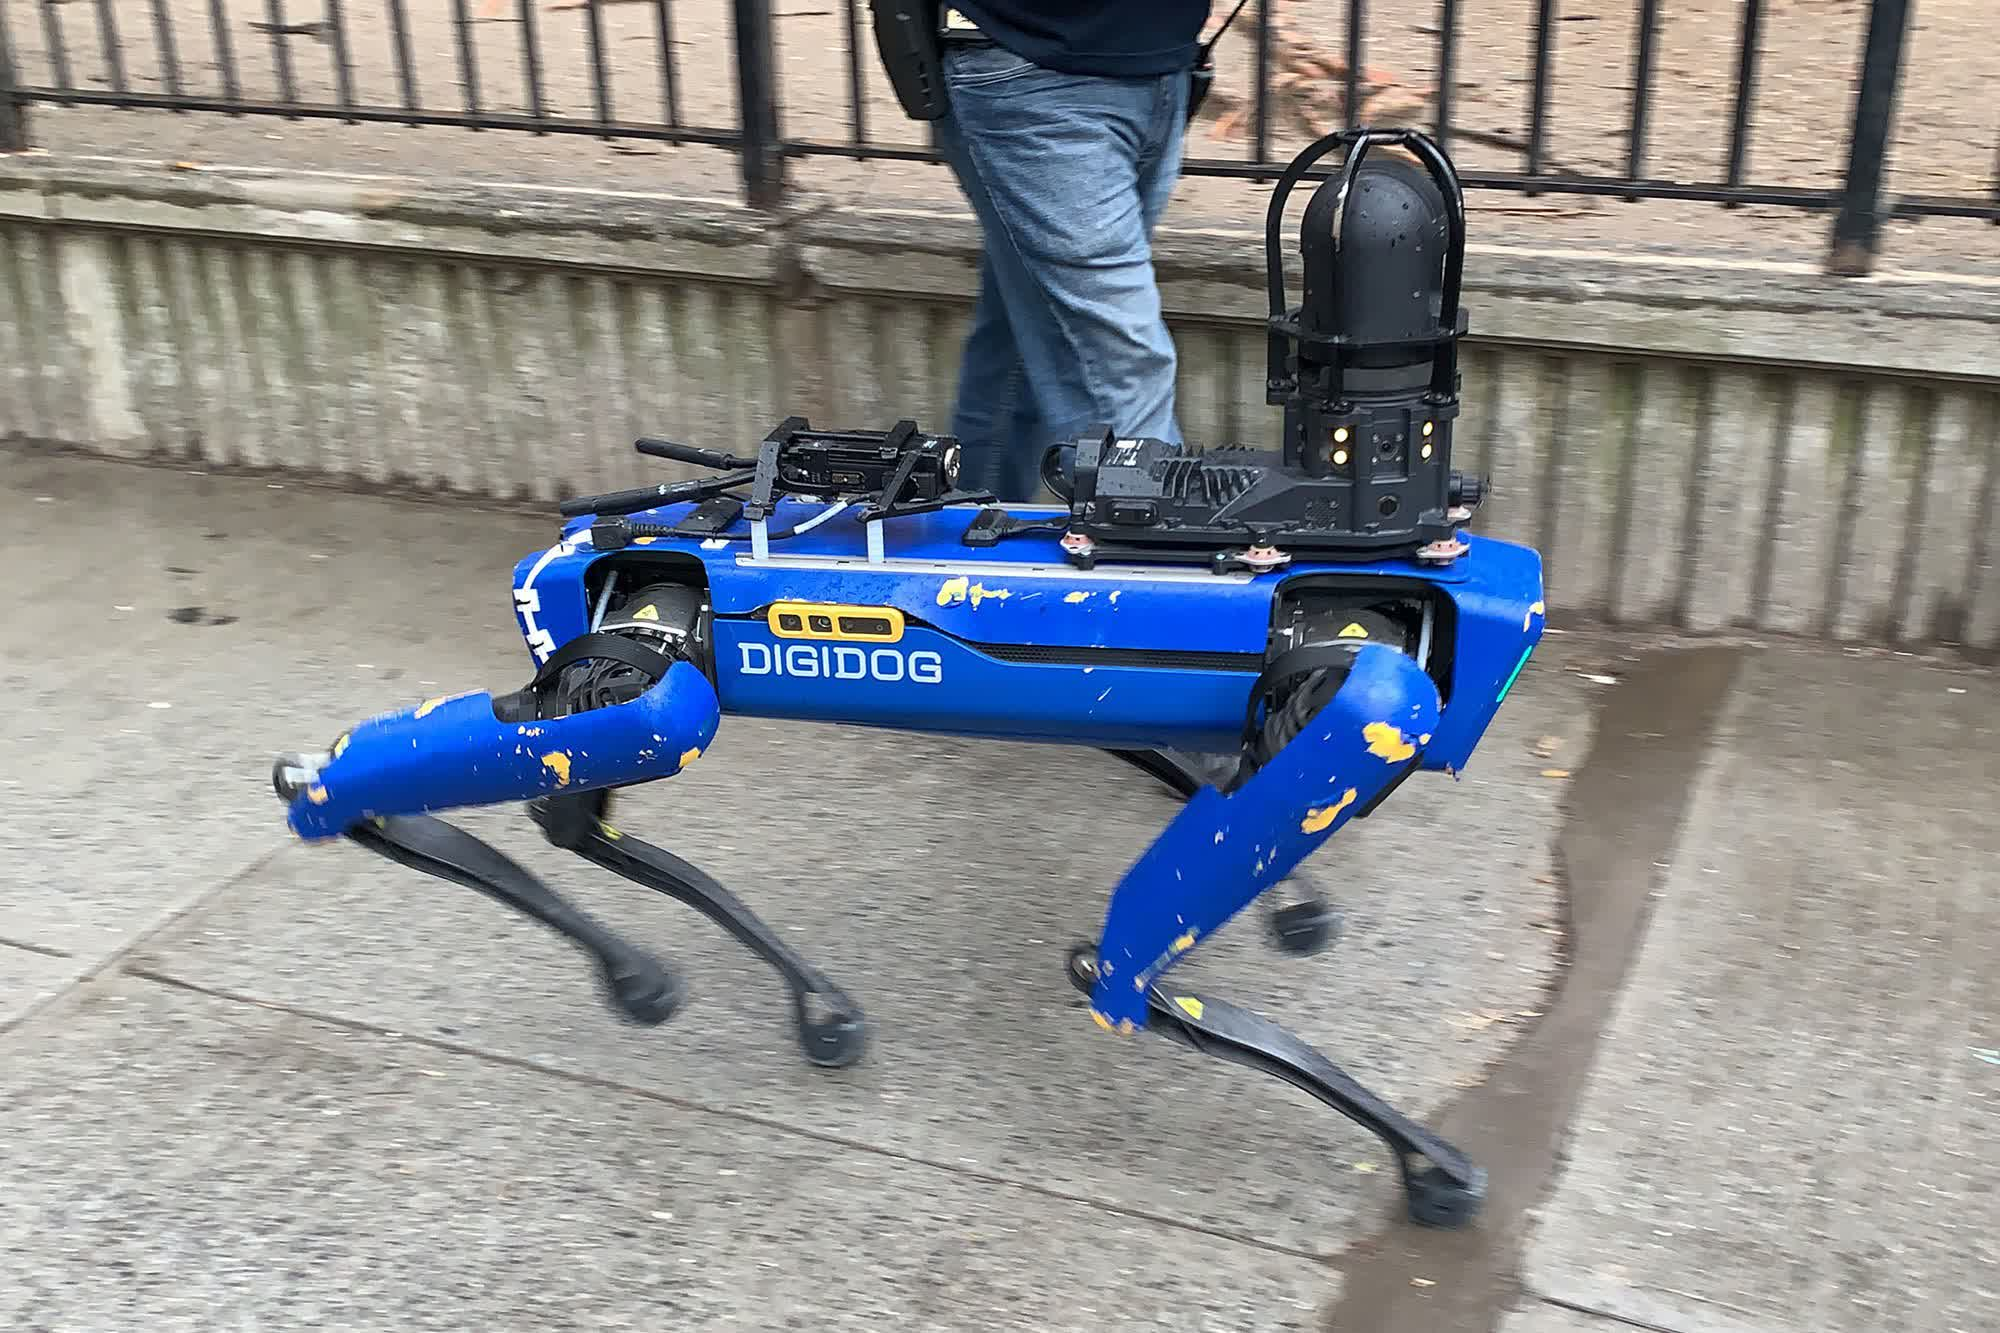 NYPD rips up $94,000 'Digidog' contract with Boston Dynamics after backlash from activists and city officials